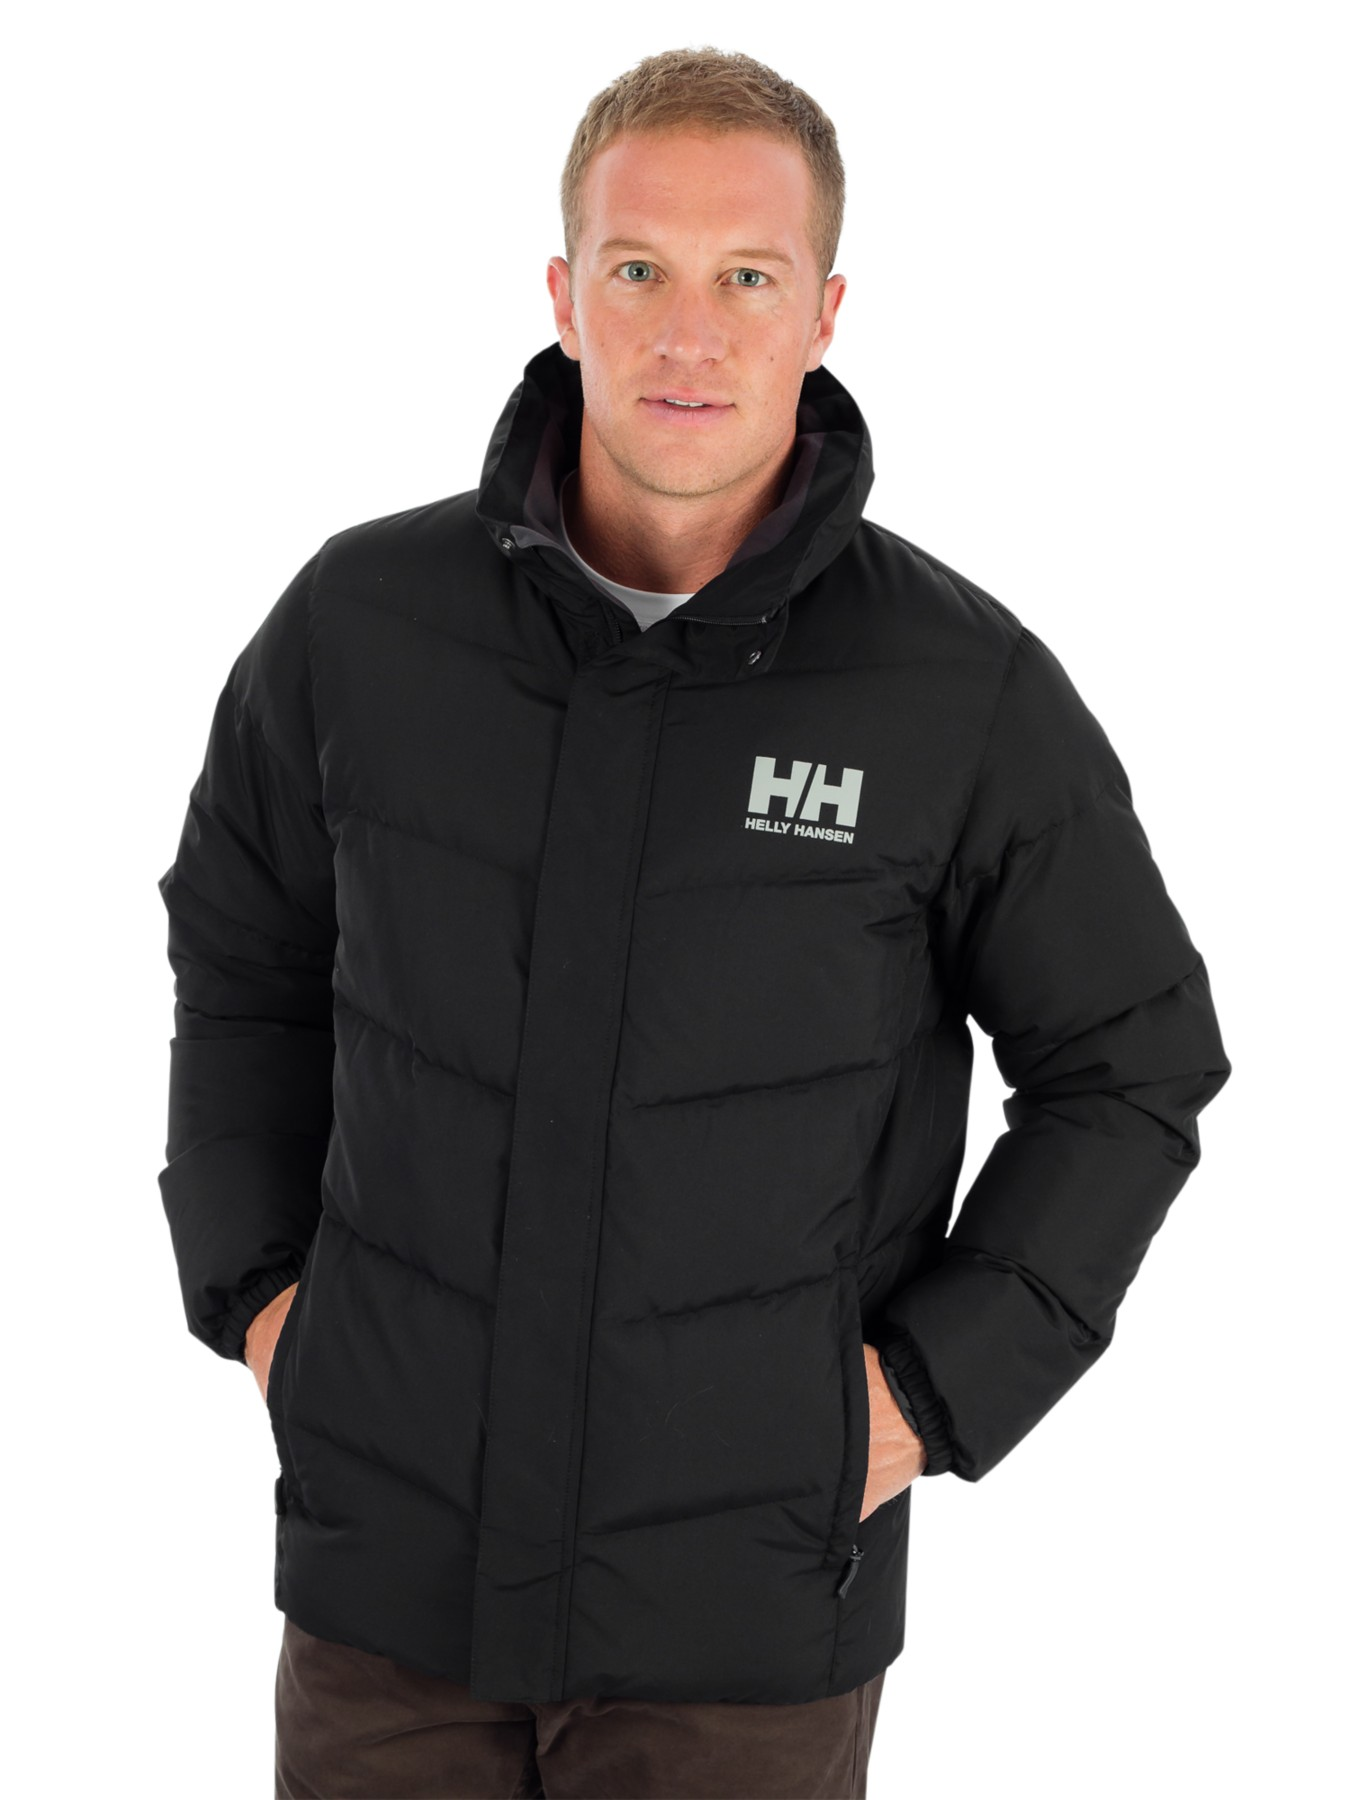 c4d8ef27ed2 Helly Hansen Dubliner Down Jacket in Black for Men - Lyst